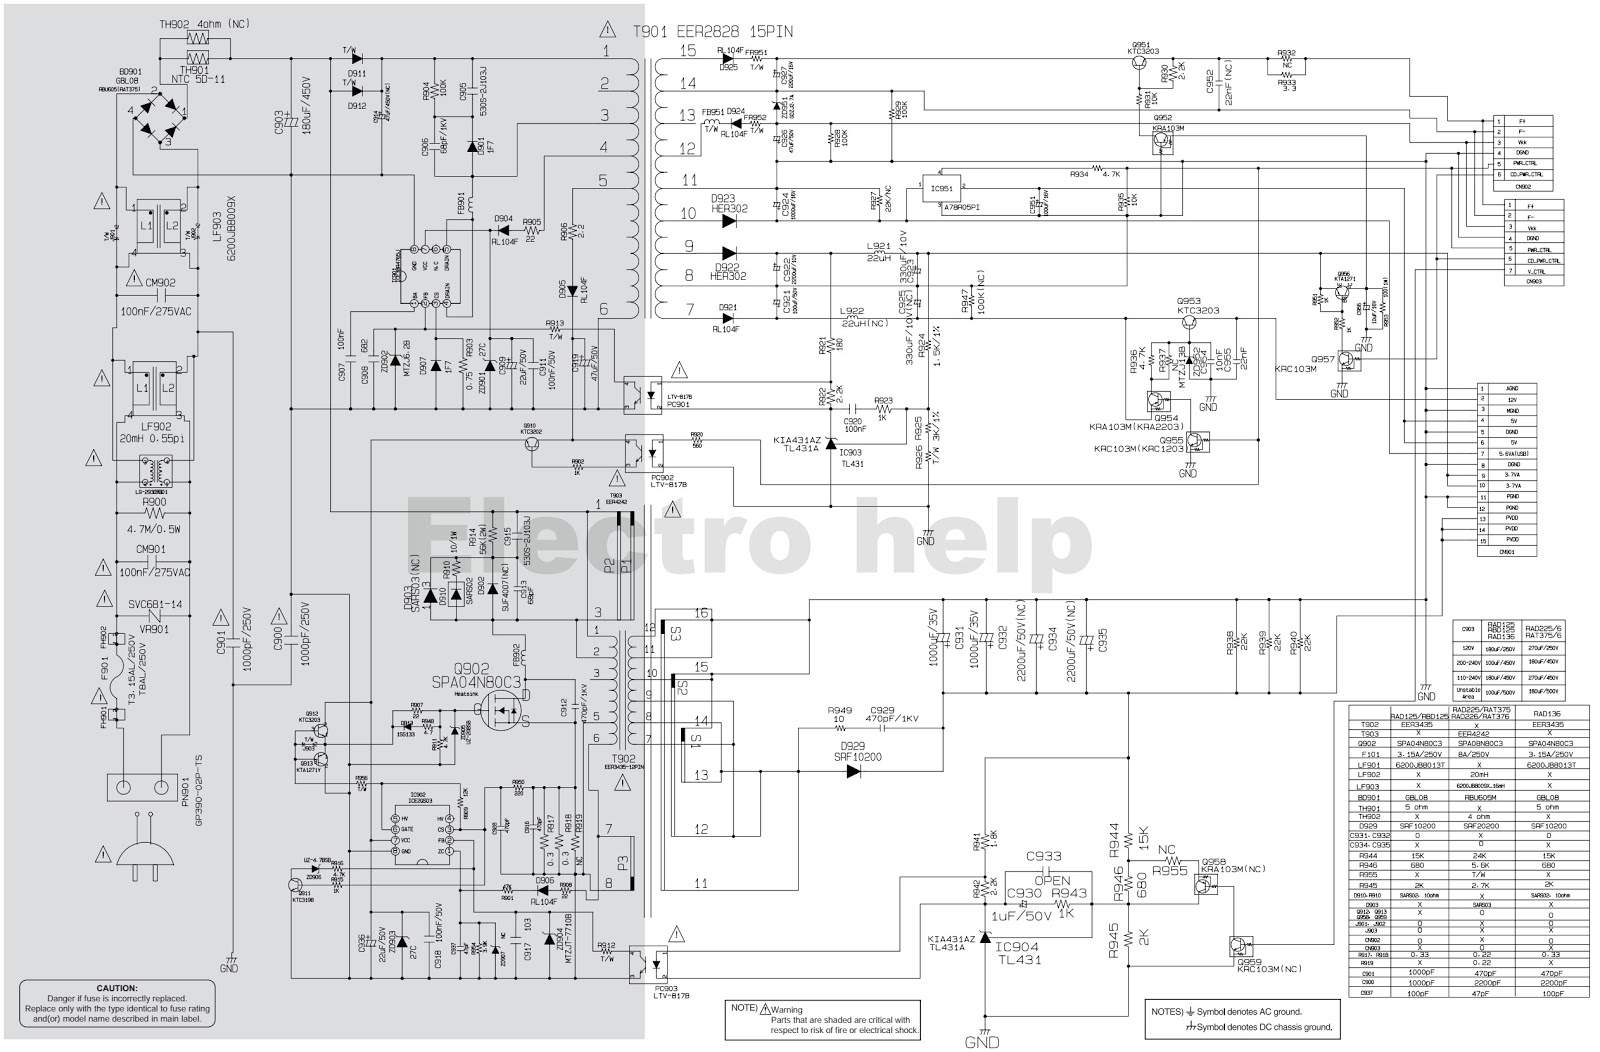 √ Whirlpool Electric Range Wiring Diagram In Groovy Almost on whirlpool cooktop rf302bxgw, hopper installation diagrams, whirlpool defrost timer wiring diagram, electric cooktop wiring diagrams, whirlpool dishwasher diagram, whirlpool oven wiring diagram, whirlpool estate refrigerator wiring schematic, whirlpool cooktop installation, whirlpool cooktop accessories,